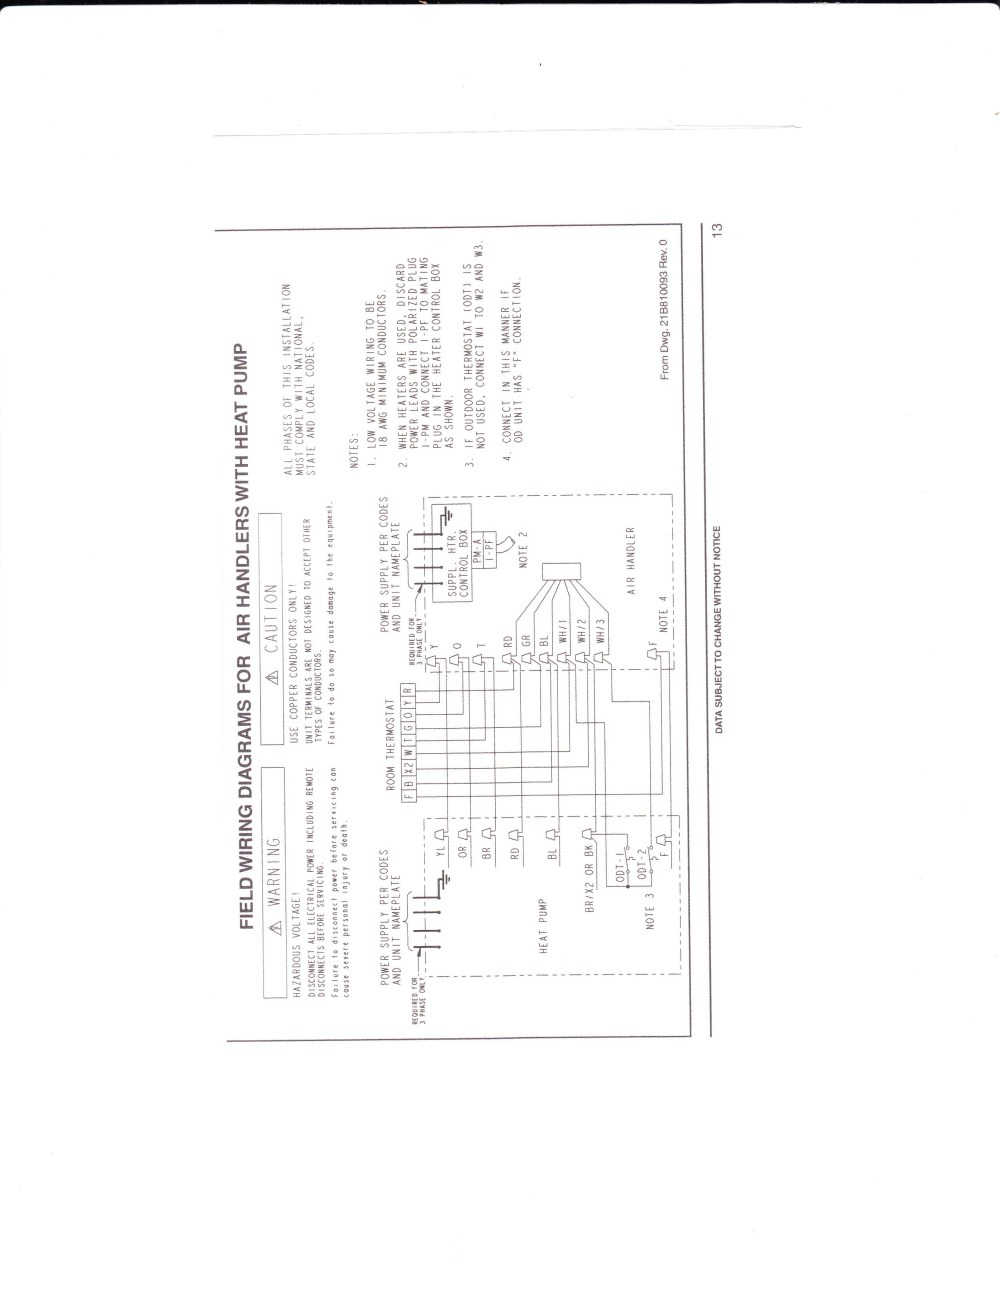 medium resolution of i have a trane that has weathertron thermostat it at wiring diagram for 5 wire thermostat wiring diagram product review ecobee smart si